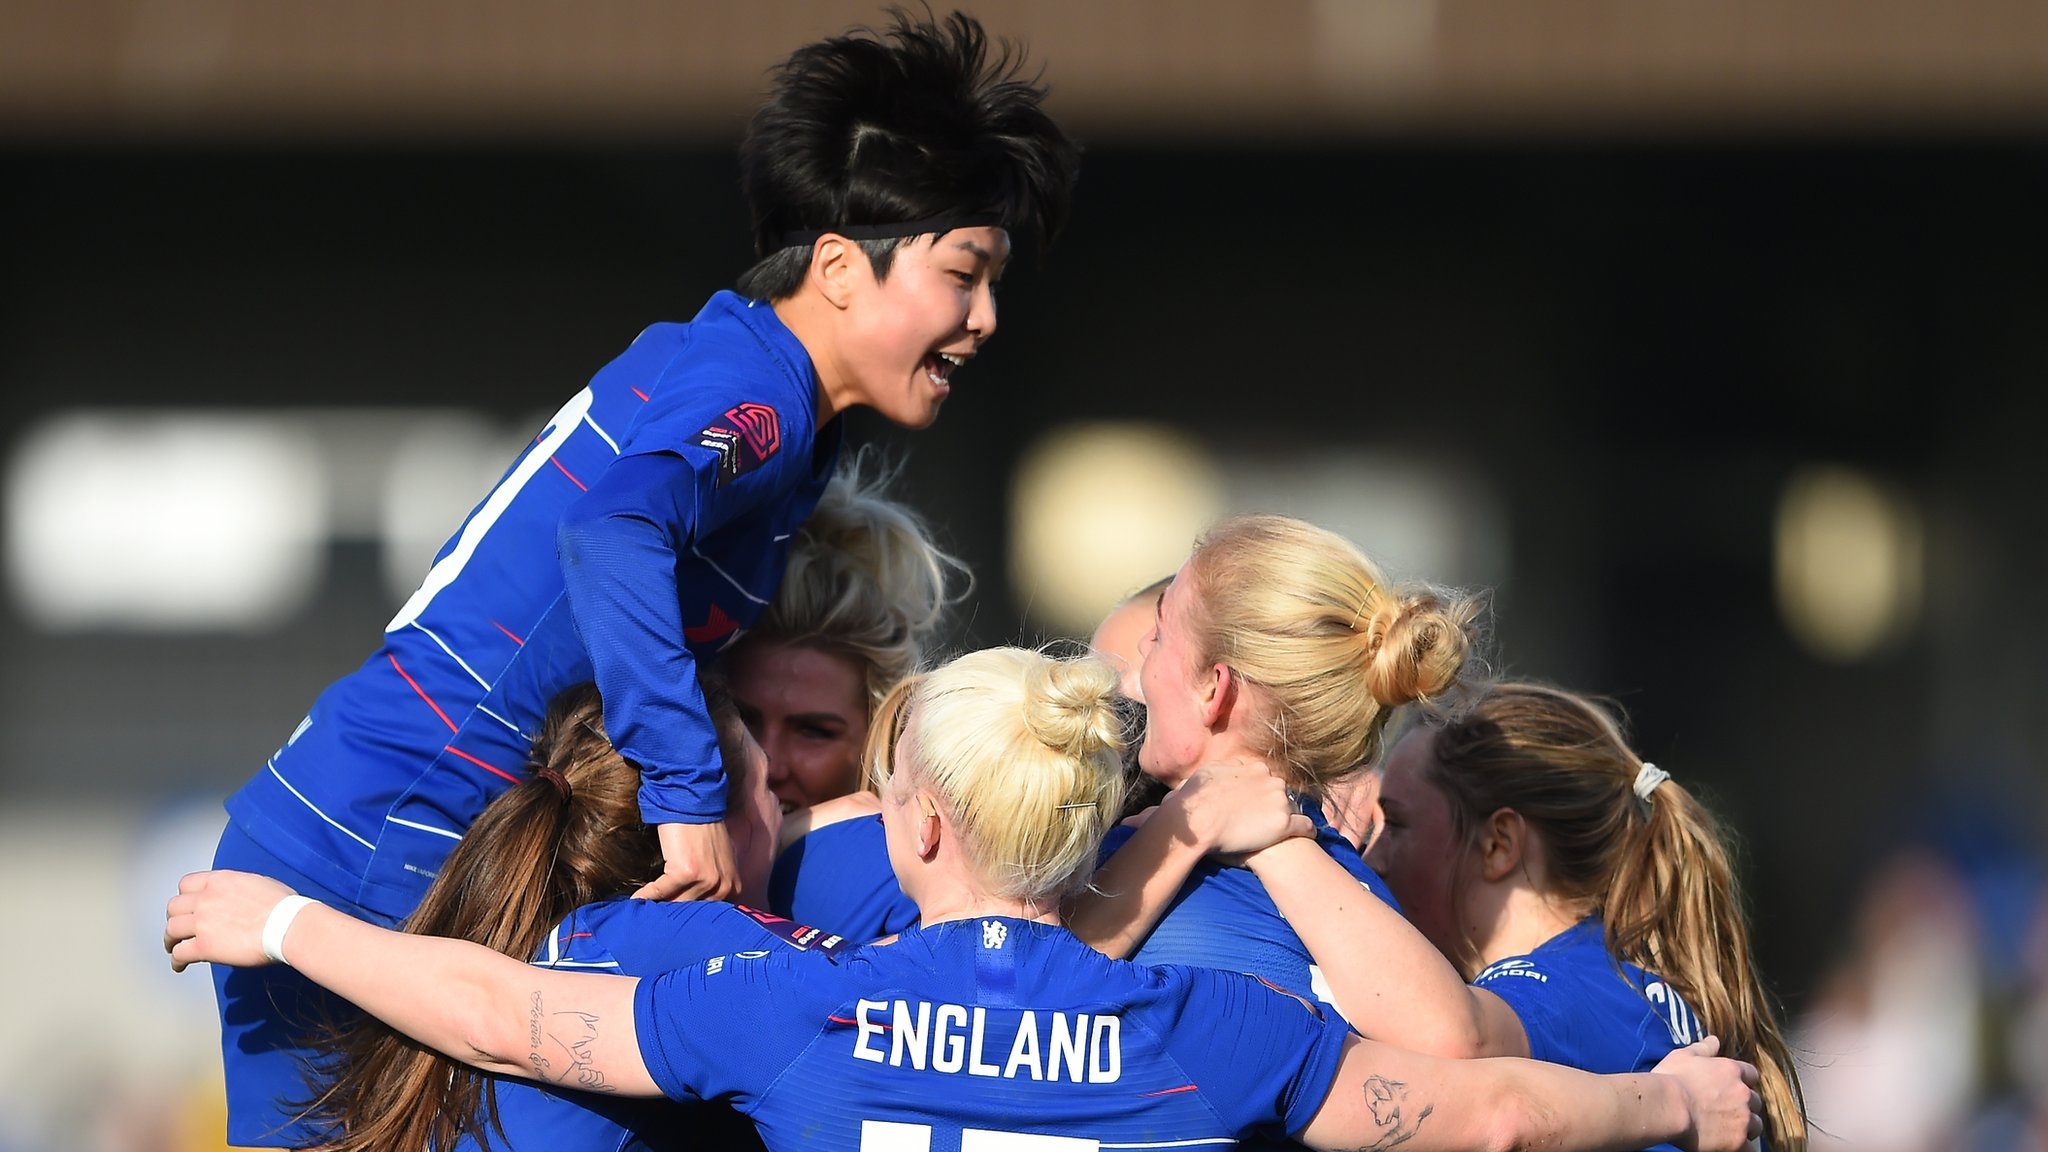 Championship side Durham to host holders Chelsea in Women's FA Cup